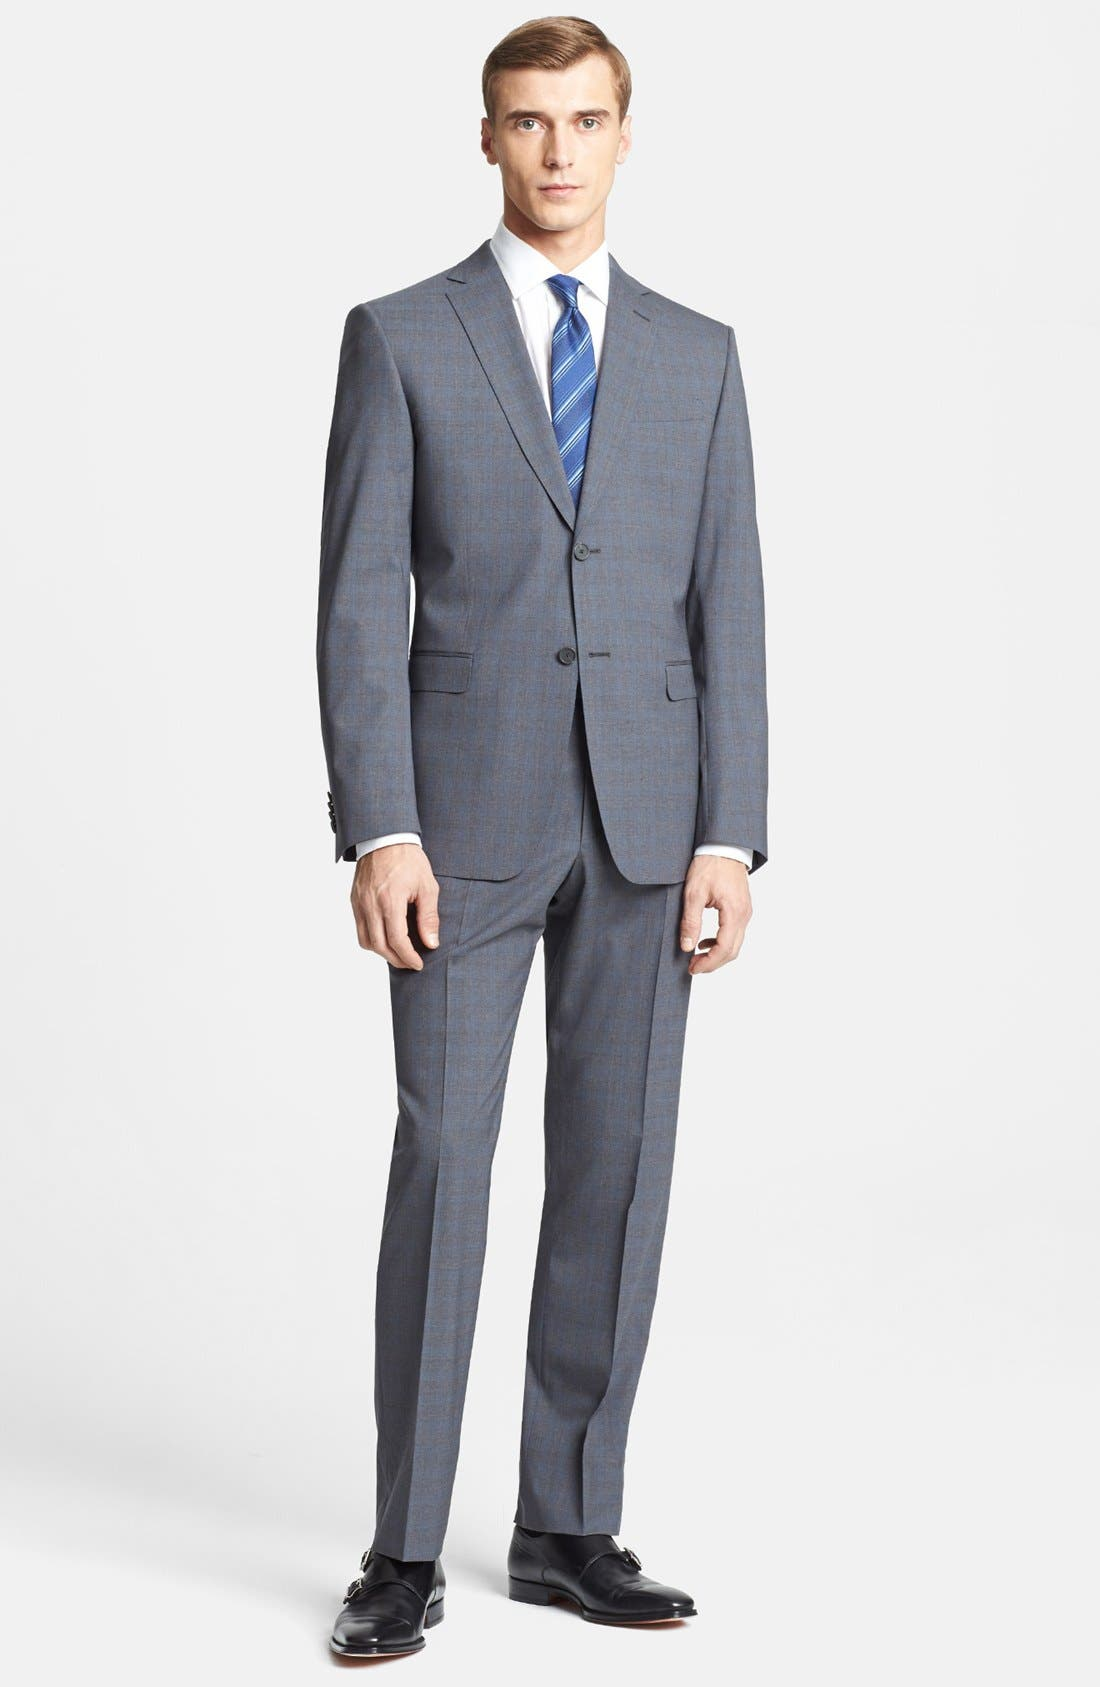 Alternate Image 1 Selected - Z Zegna Trim Fit Grey Wool Suit